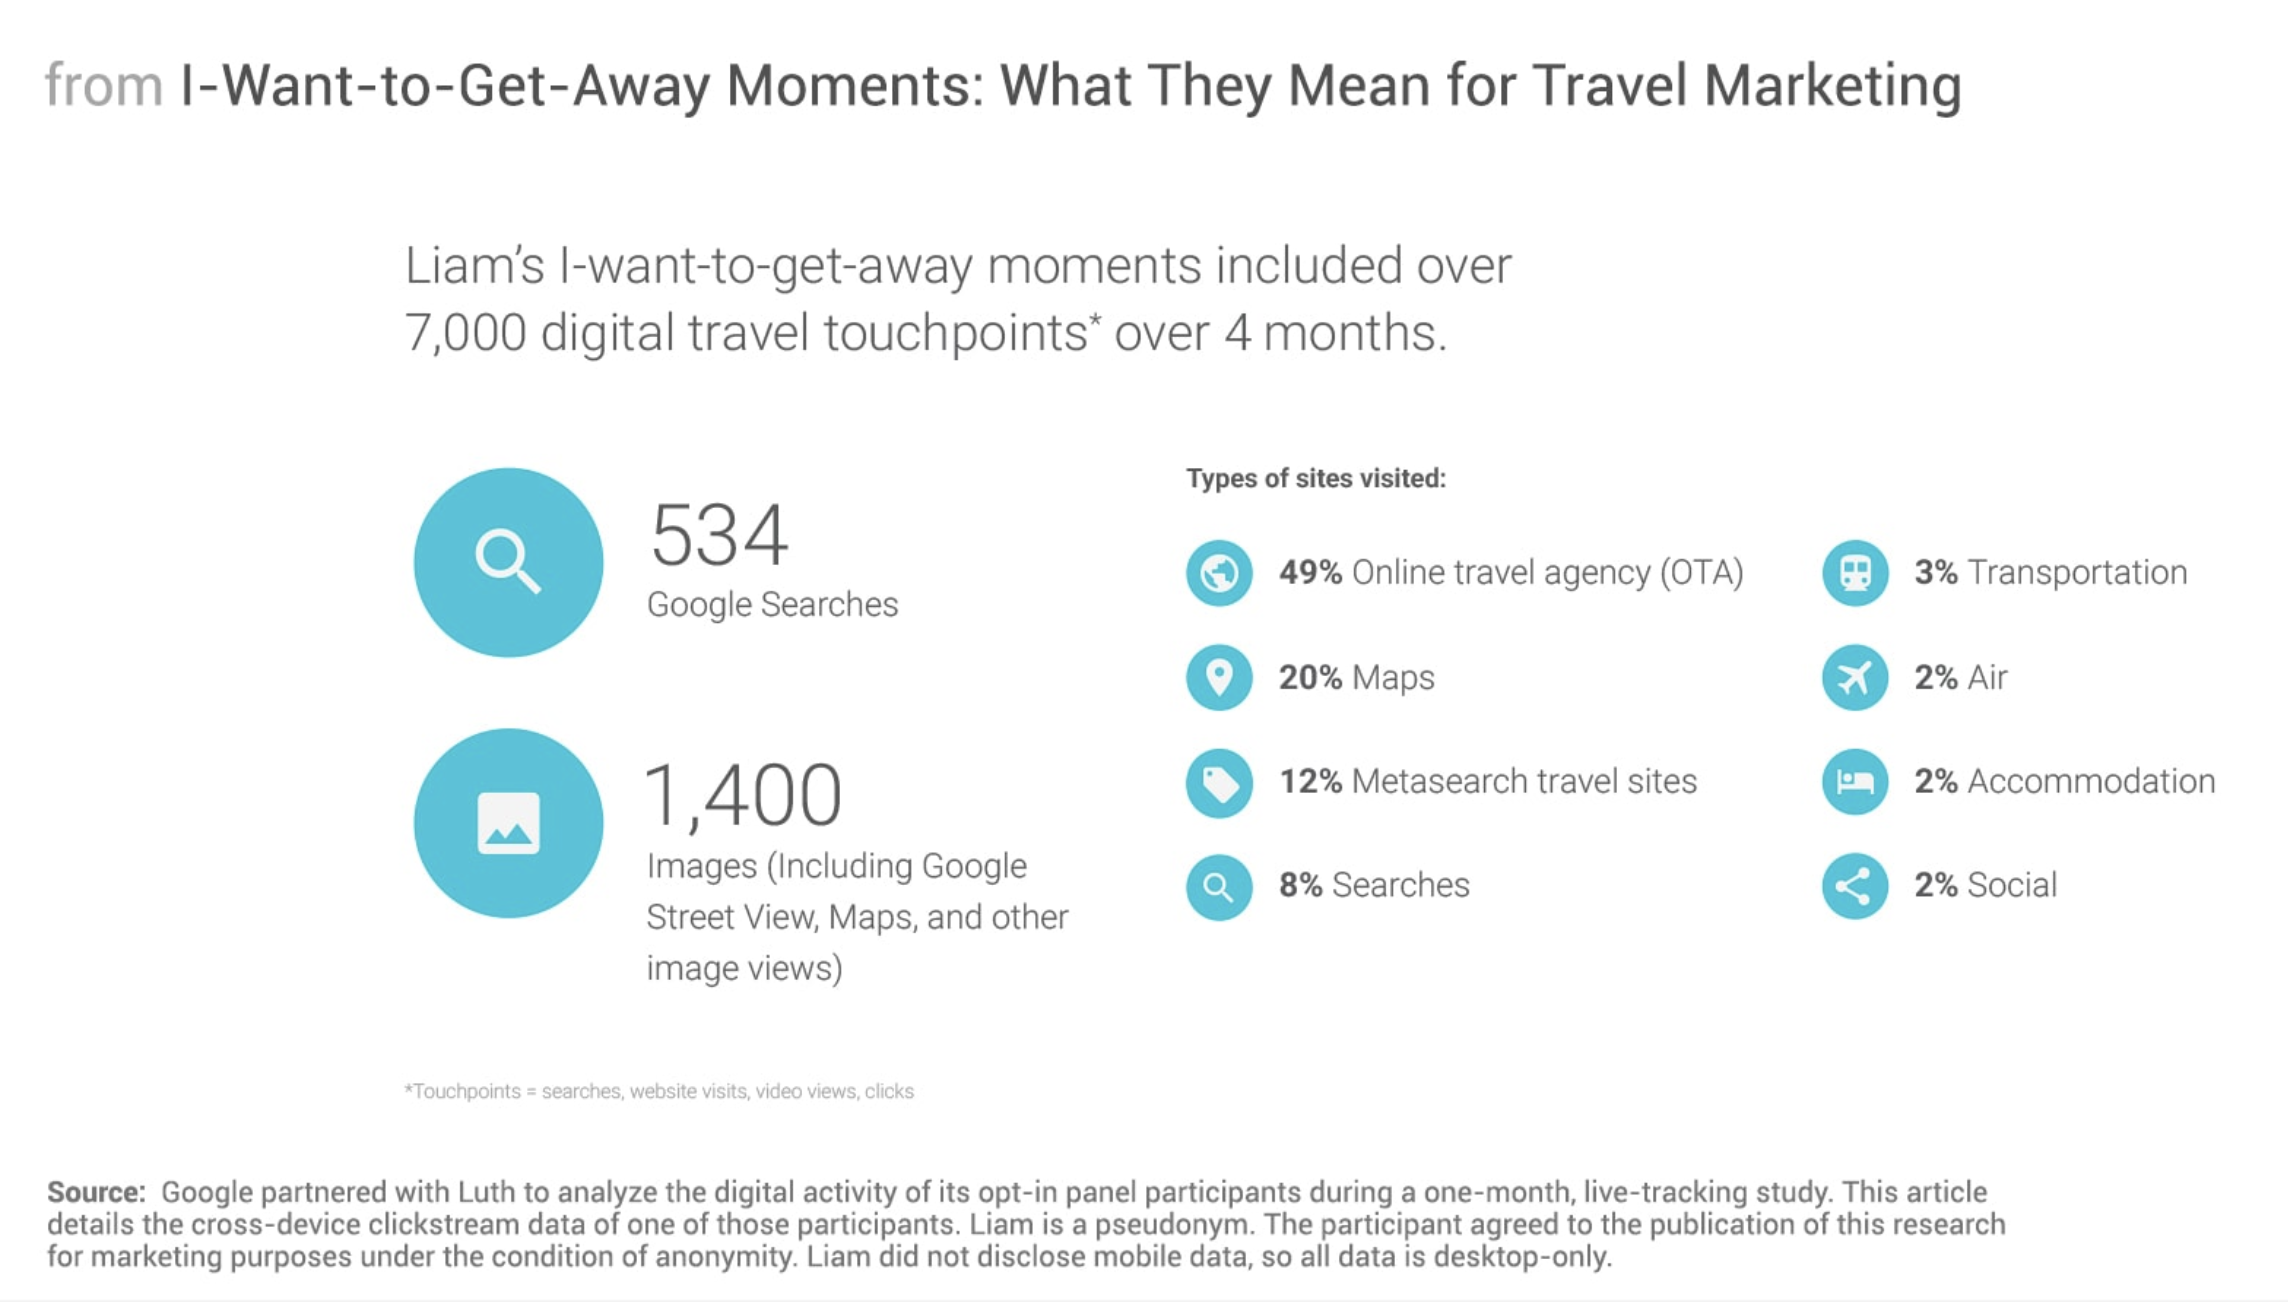 Think with Google: Analyses of a travel marketing digital activity (one-month live user tracking).